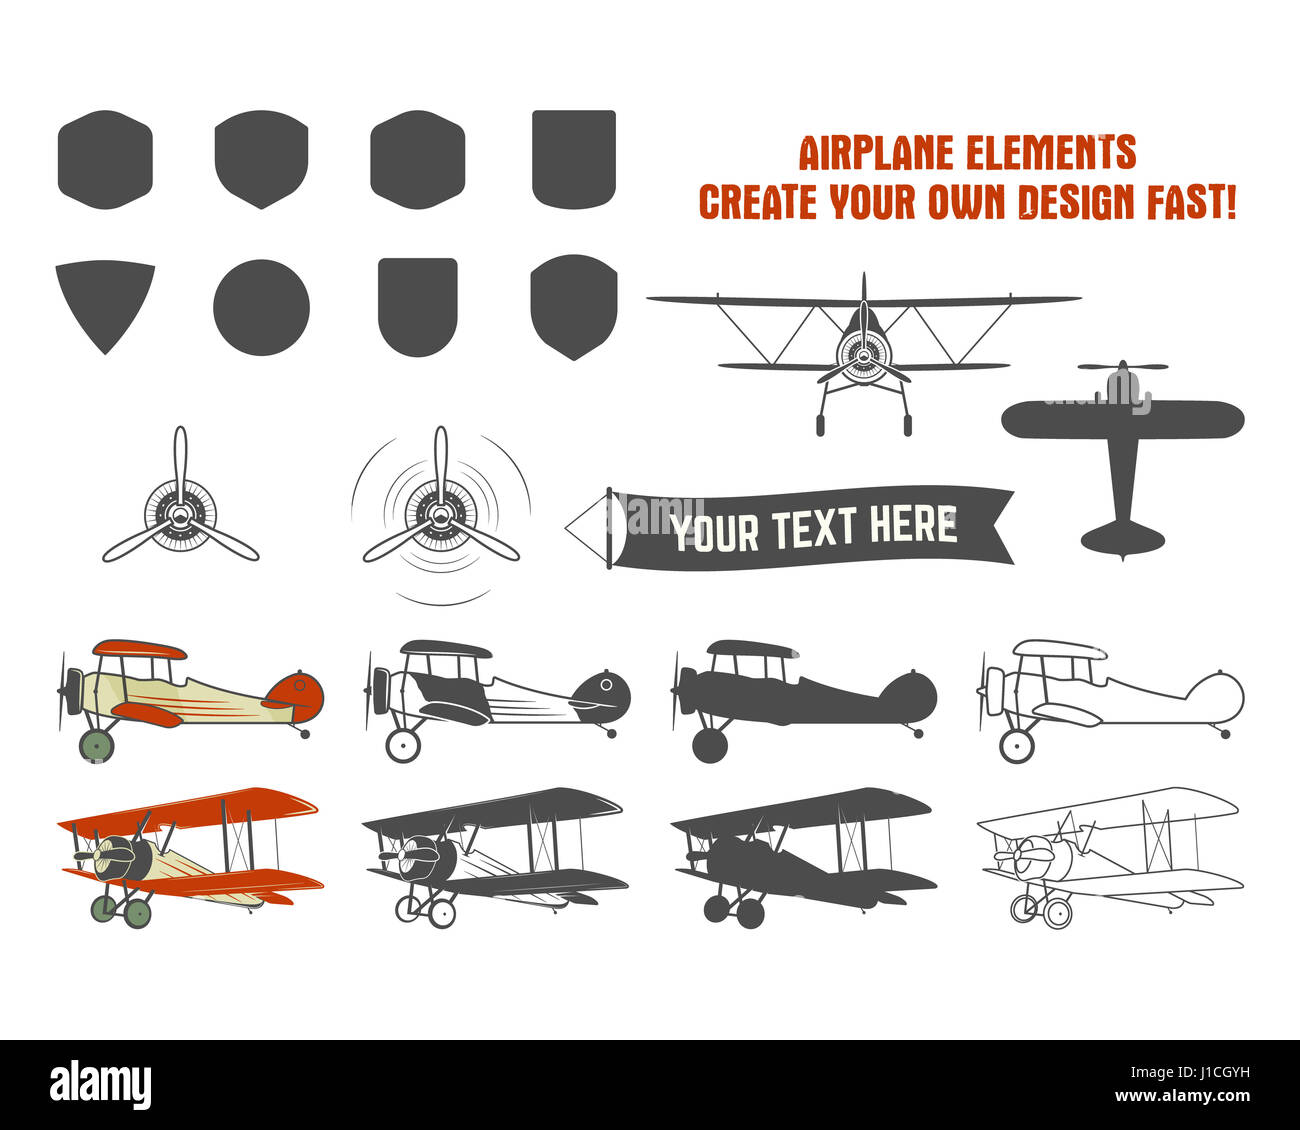 Vintage airplane symbols biplane graphic labels retro plane vintage airplane symbols biplane graphic labels retro plane badges design elements aviation stamps collection fly propeller old icon shield iso biocorpaavc Gallery